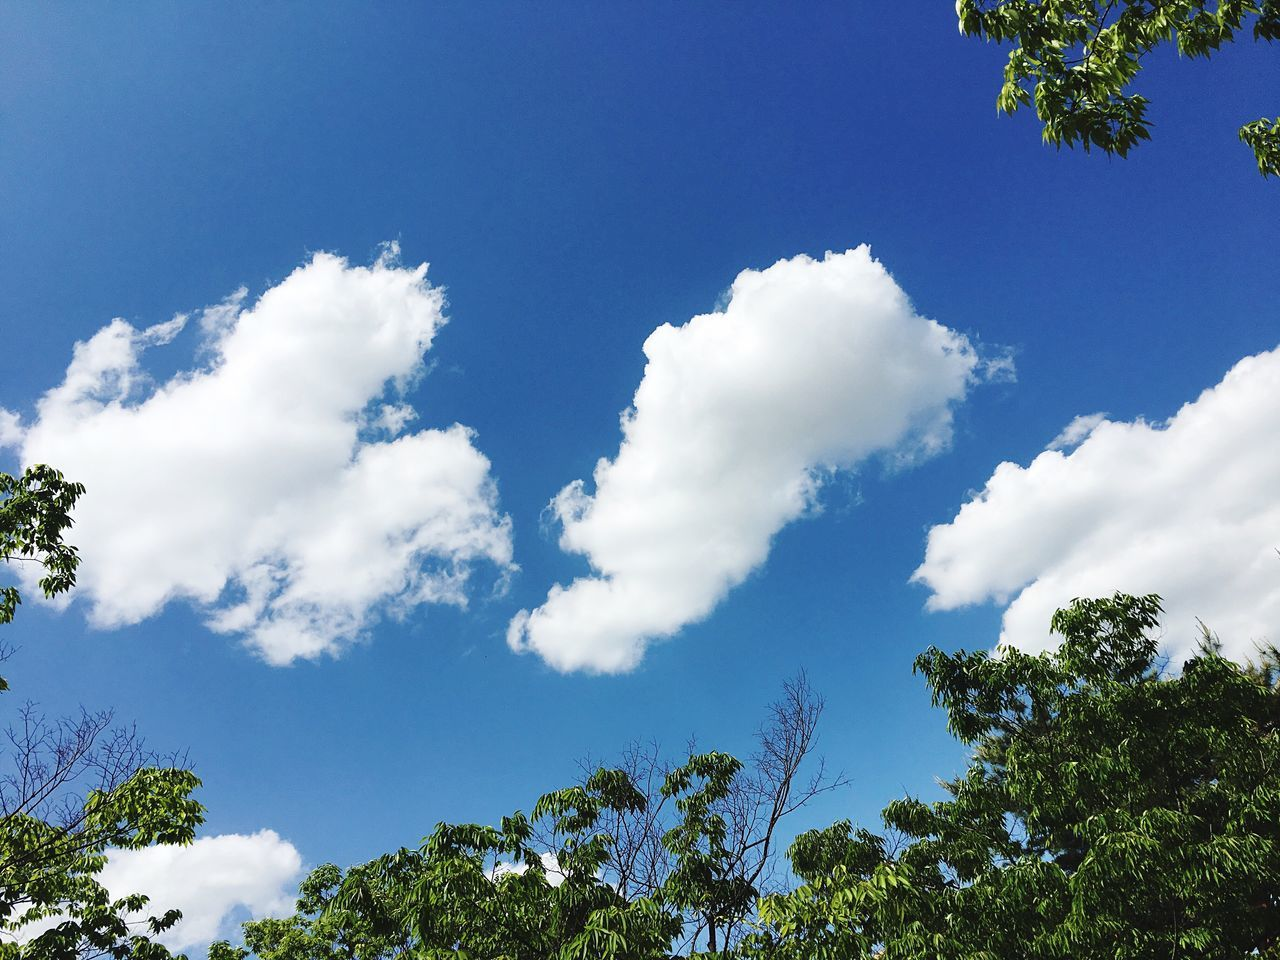 Clouds And Sky Nature Some Trees Skyblue Blue Sky The weather is nice